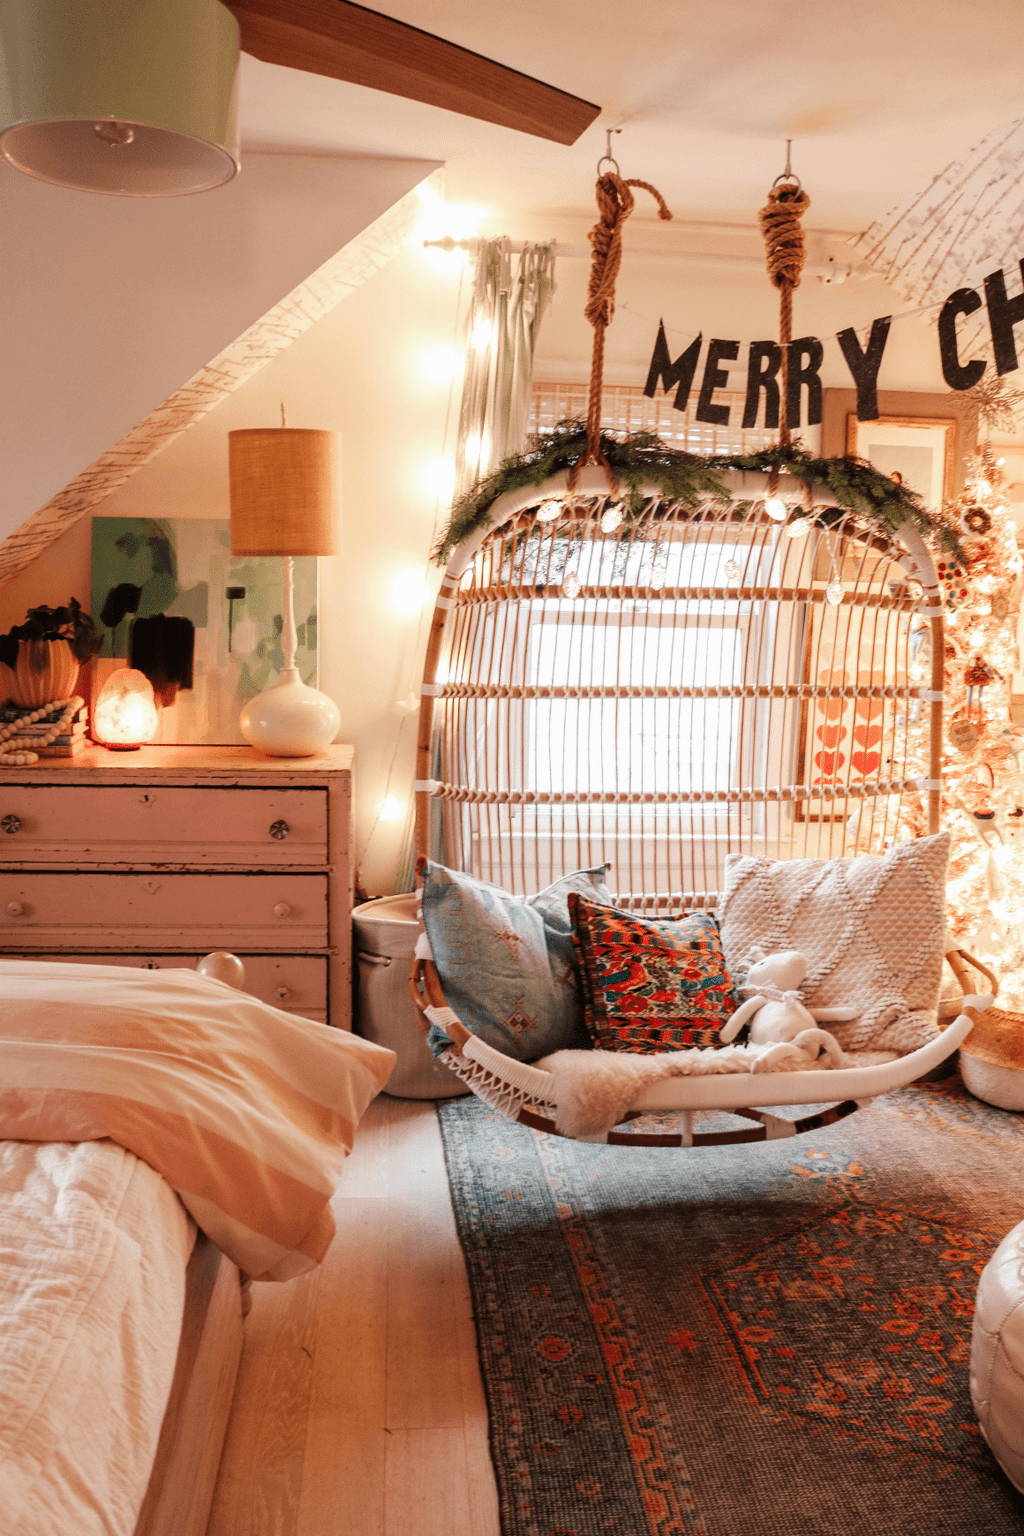 Stunning Christmas Lights Decoration Ideas In The Bedroom 29